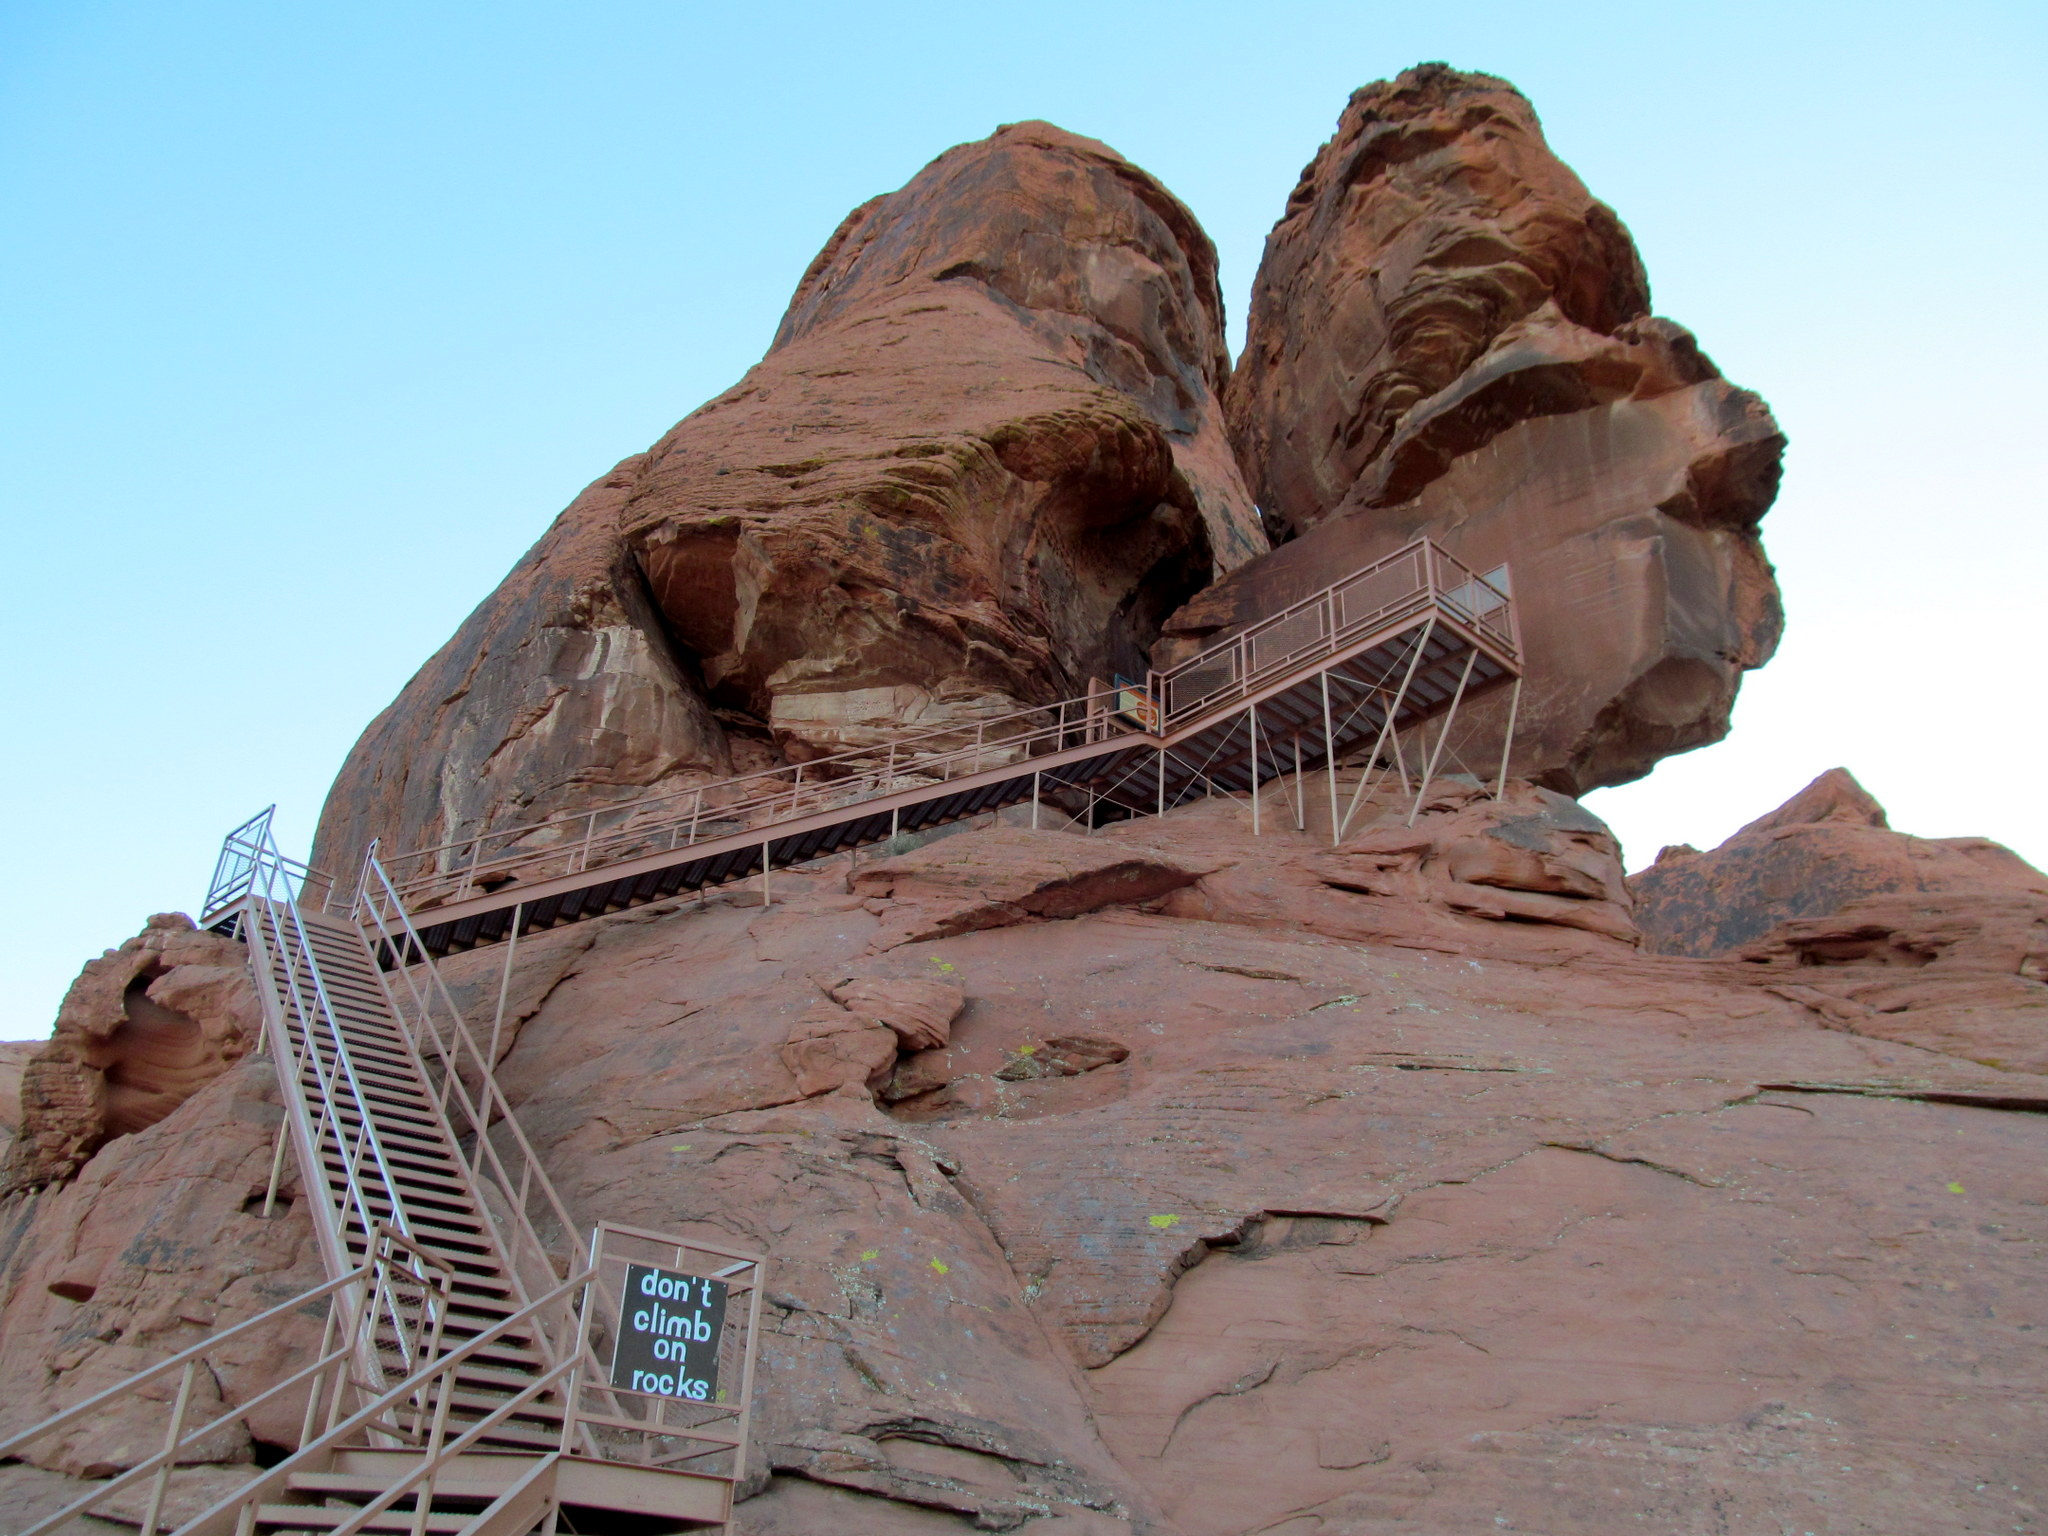 Photo: Don't climb on rocks, 'cause you might fuck 'em up more than this staircase